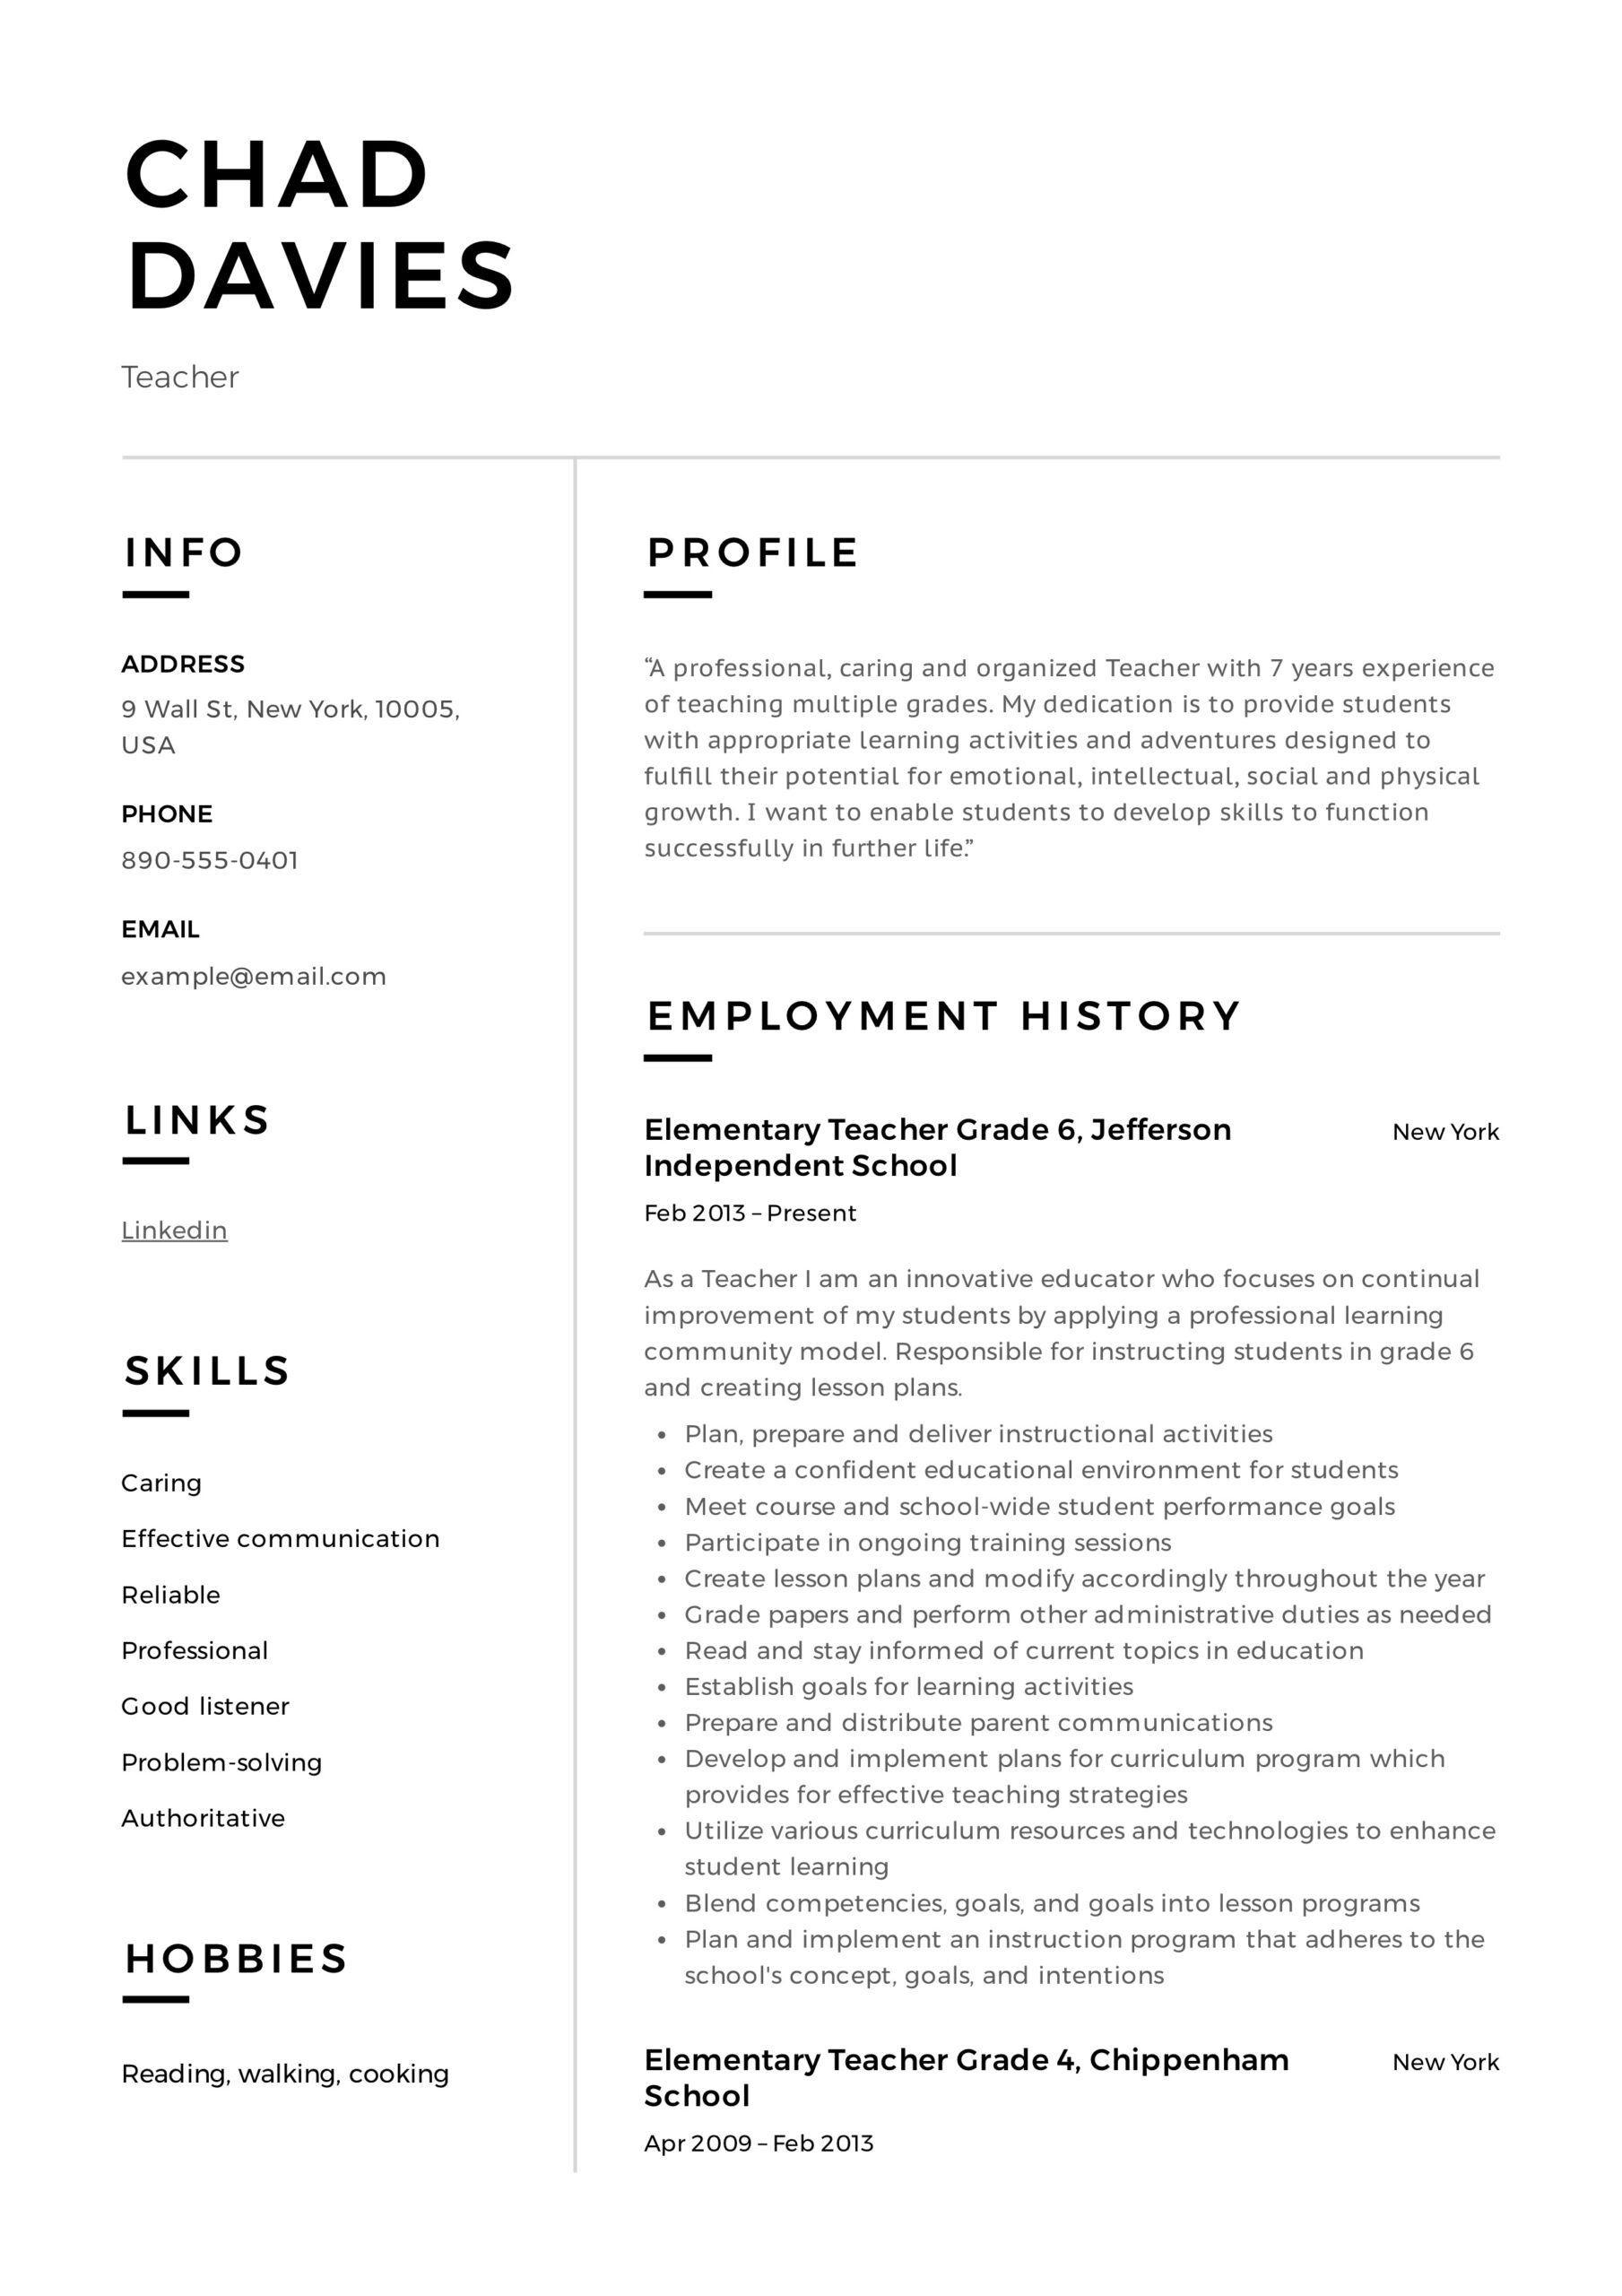 teacher resume writing guide examples pdf student skills and abilities elementary sample Resume Student Resume Skills And Abilities Examples